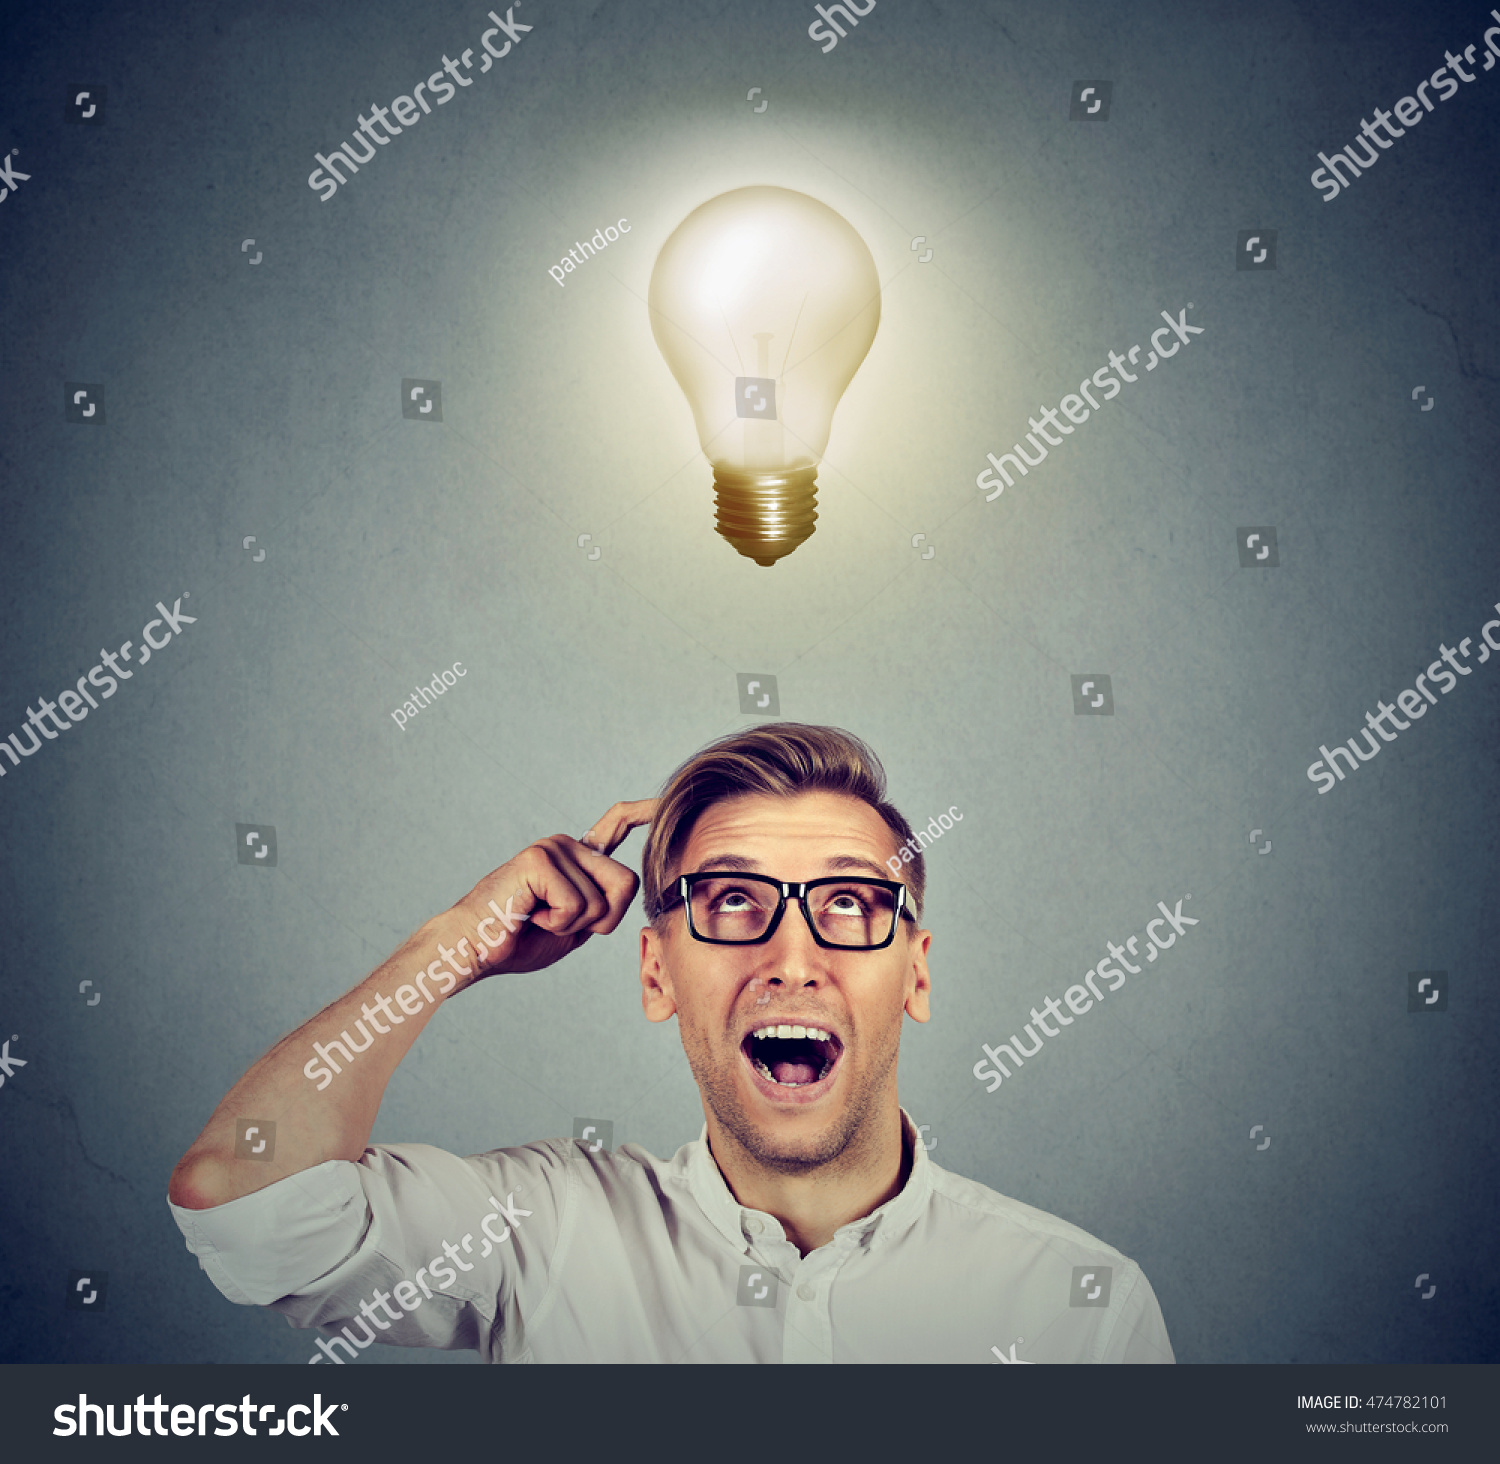 Happy Man Glasses Looking Bright Light Stock Photo (Safe to Use ... for Idea Light Bulb Over Head  181pct